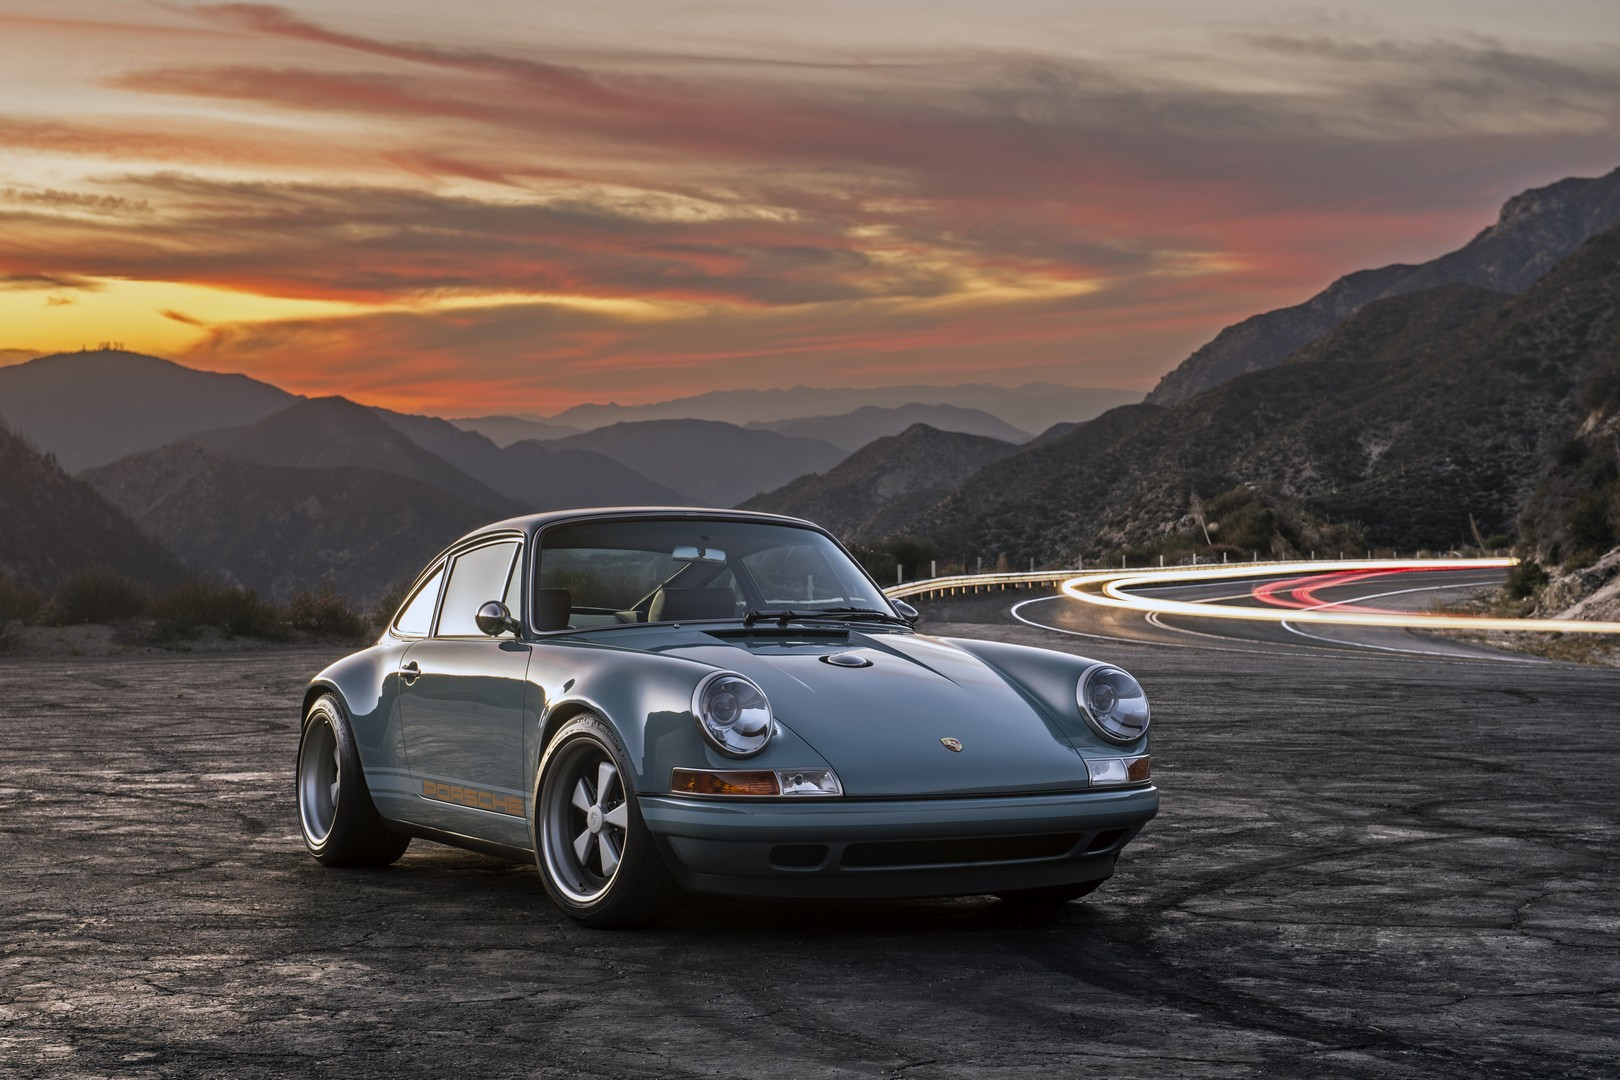 Singer Porsche 911 Duo Is Restomod Coolness - autoevolution